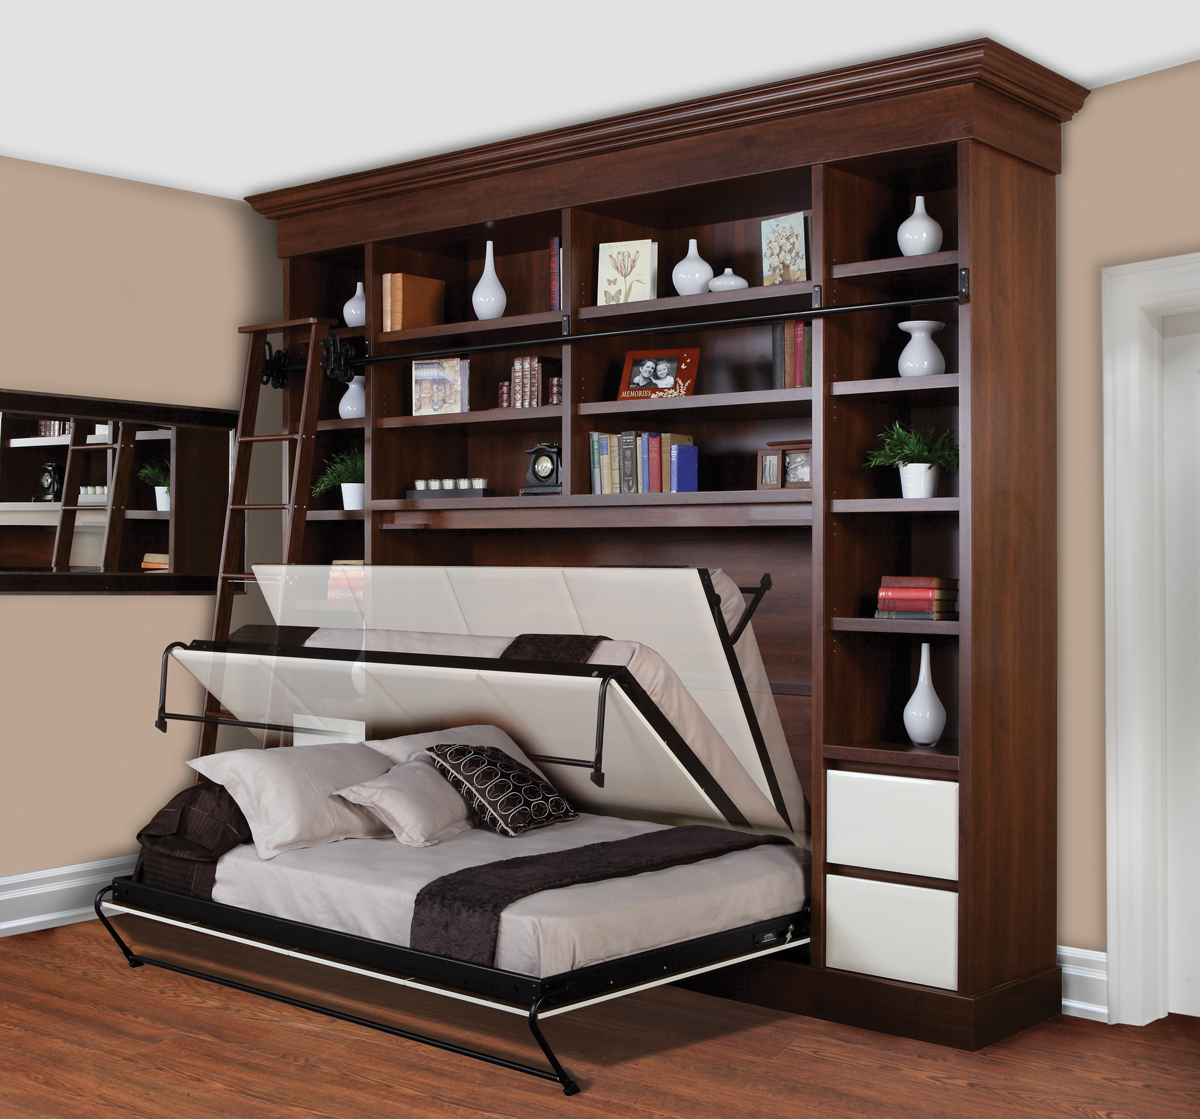 Beds That Come Down From The Wall Images Home Wall Decoration Ideas in proportions 1200 X 1119 - Walls Decor